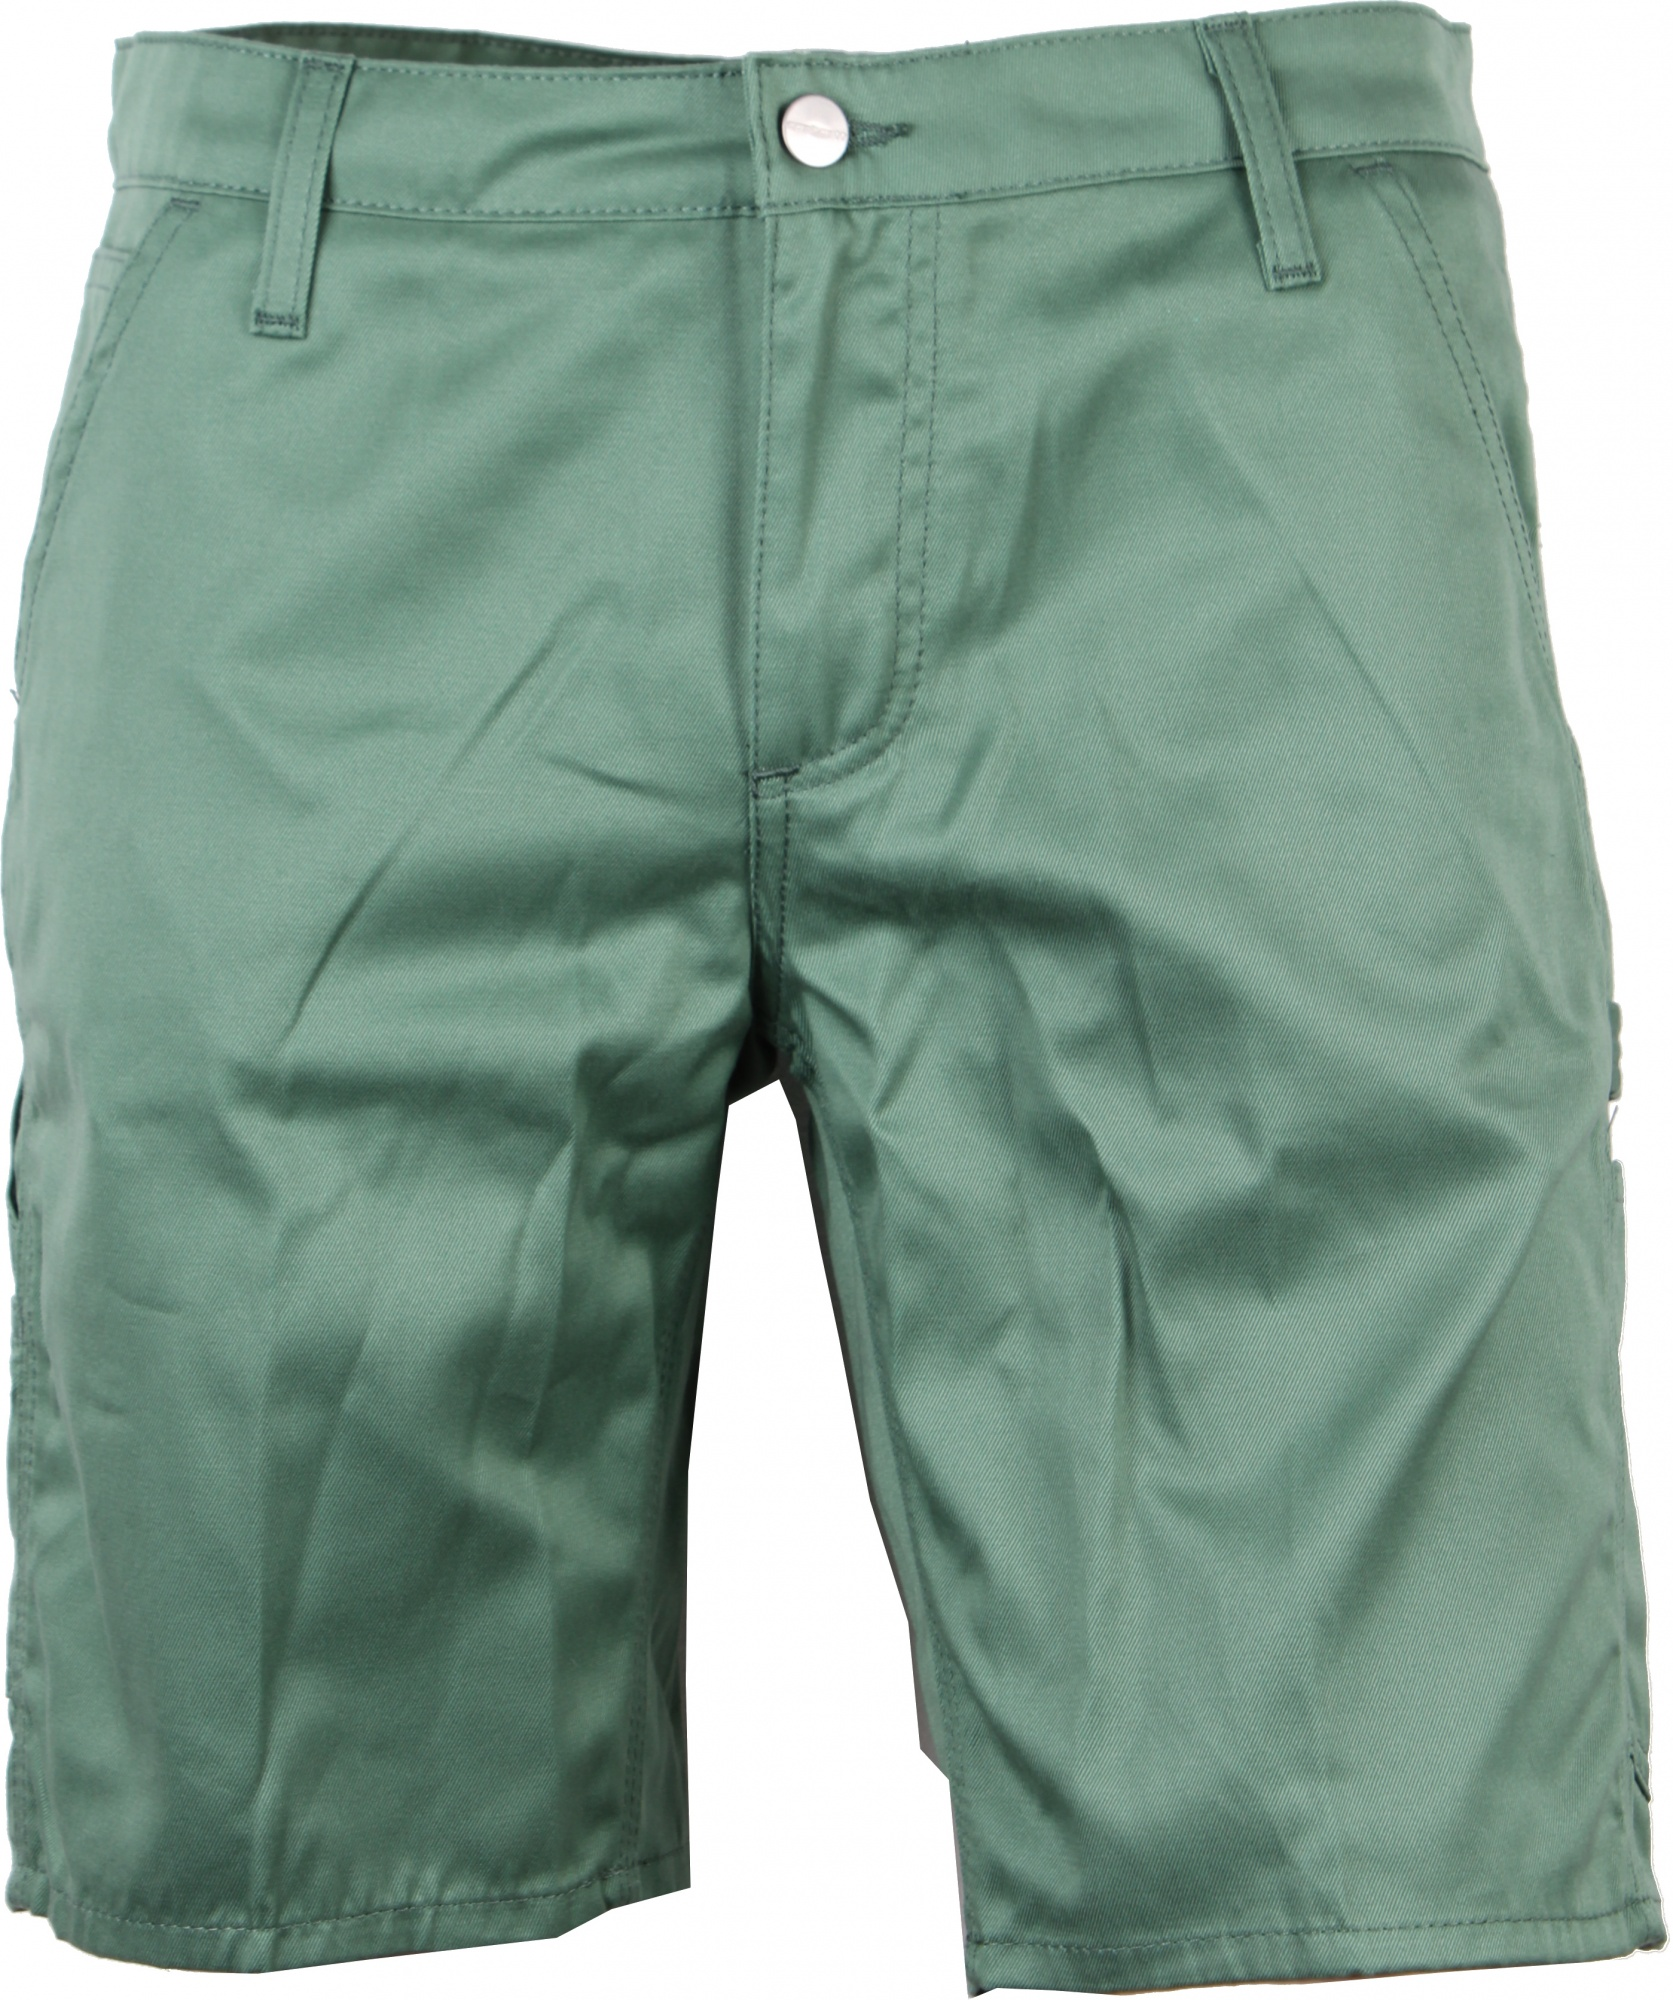 Short Korte Broek Heren.Carhartt Korte Broek Lincoln Single Knee Short Groen Heren Giga